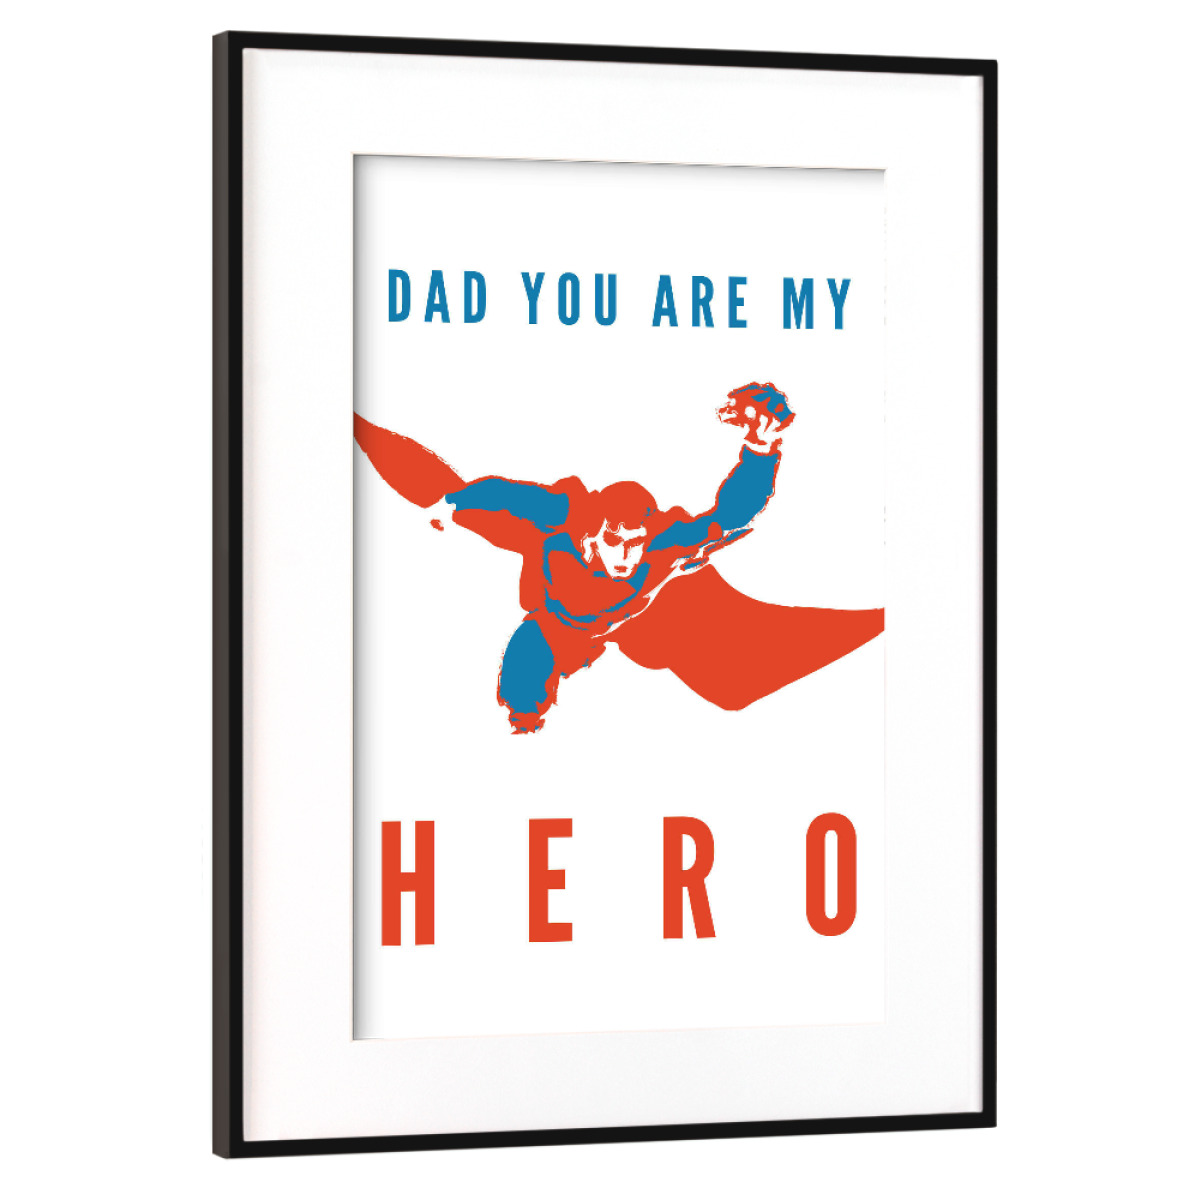 Purchase The Dad My Hero As A Frame At Artboxone